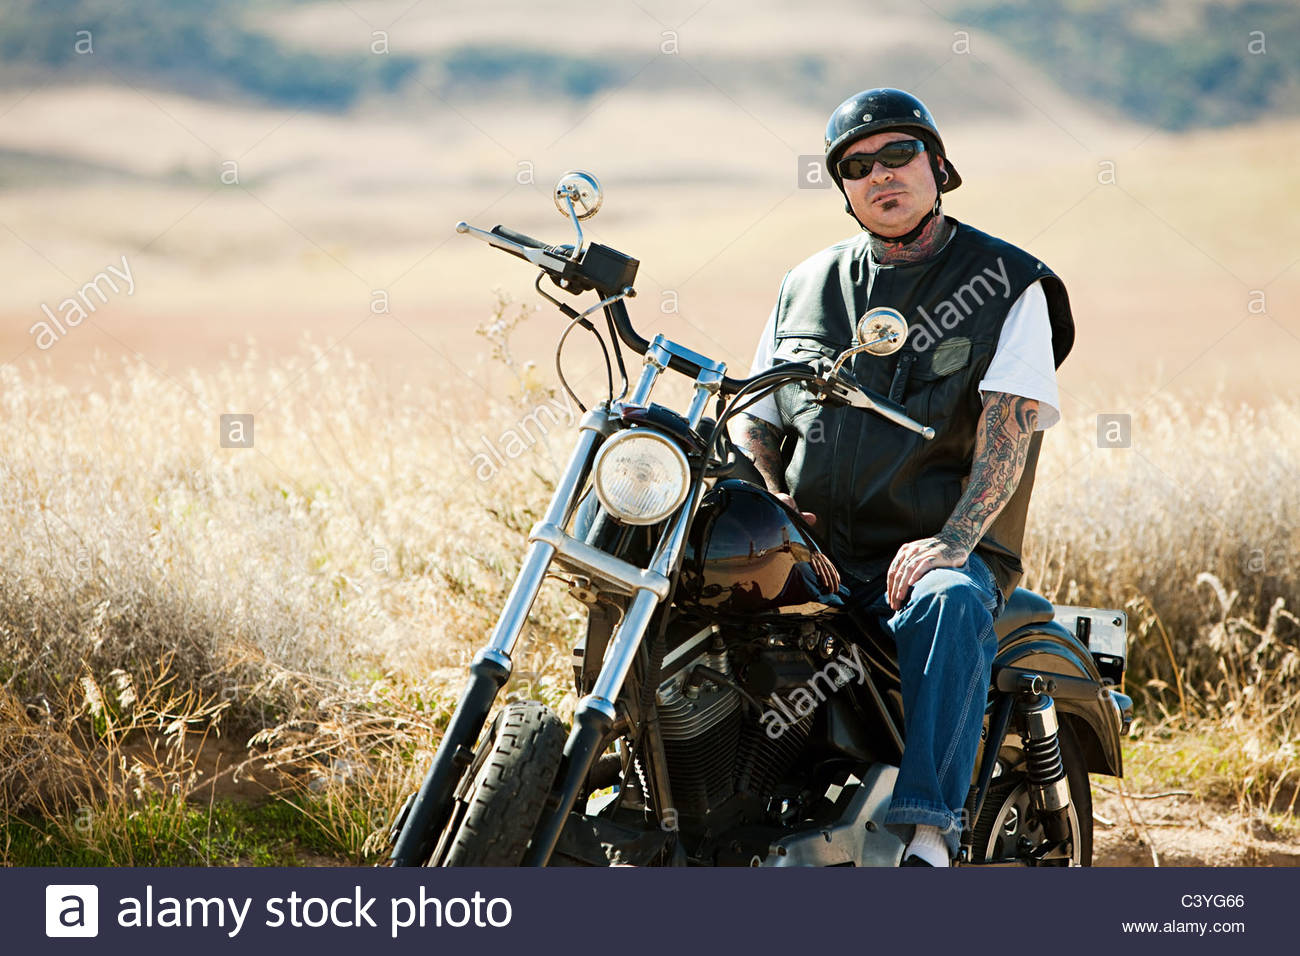 Portrait of man parked on motorcycle - Stock Image